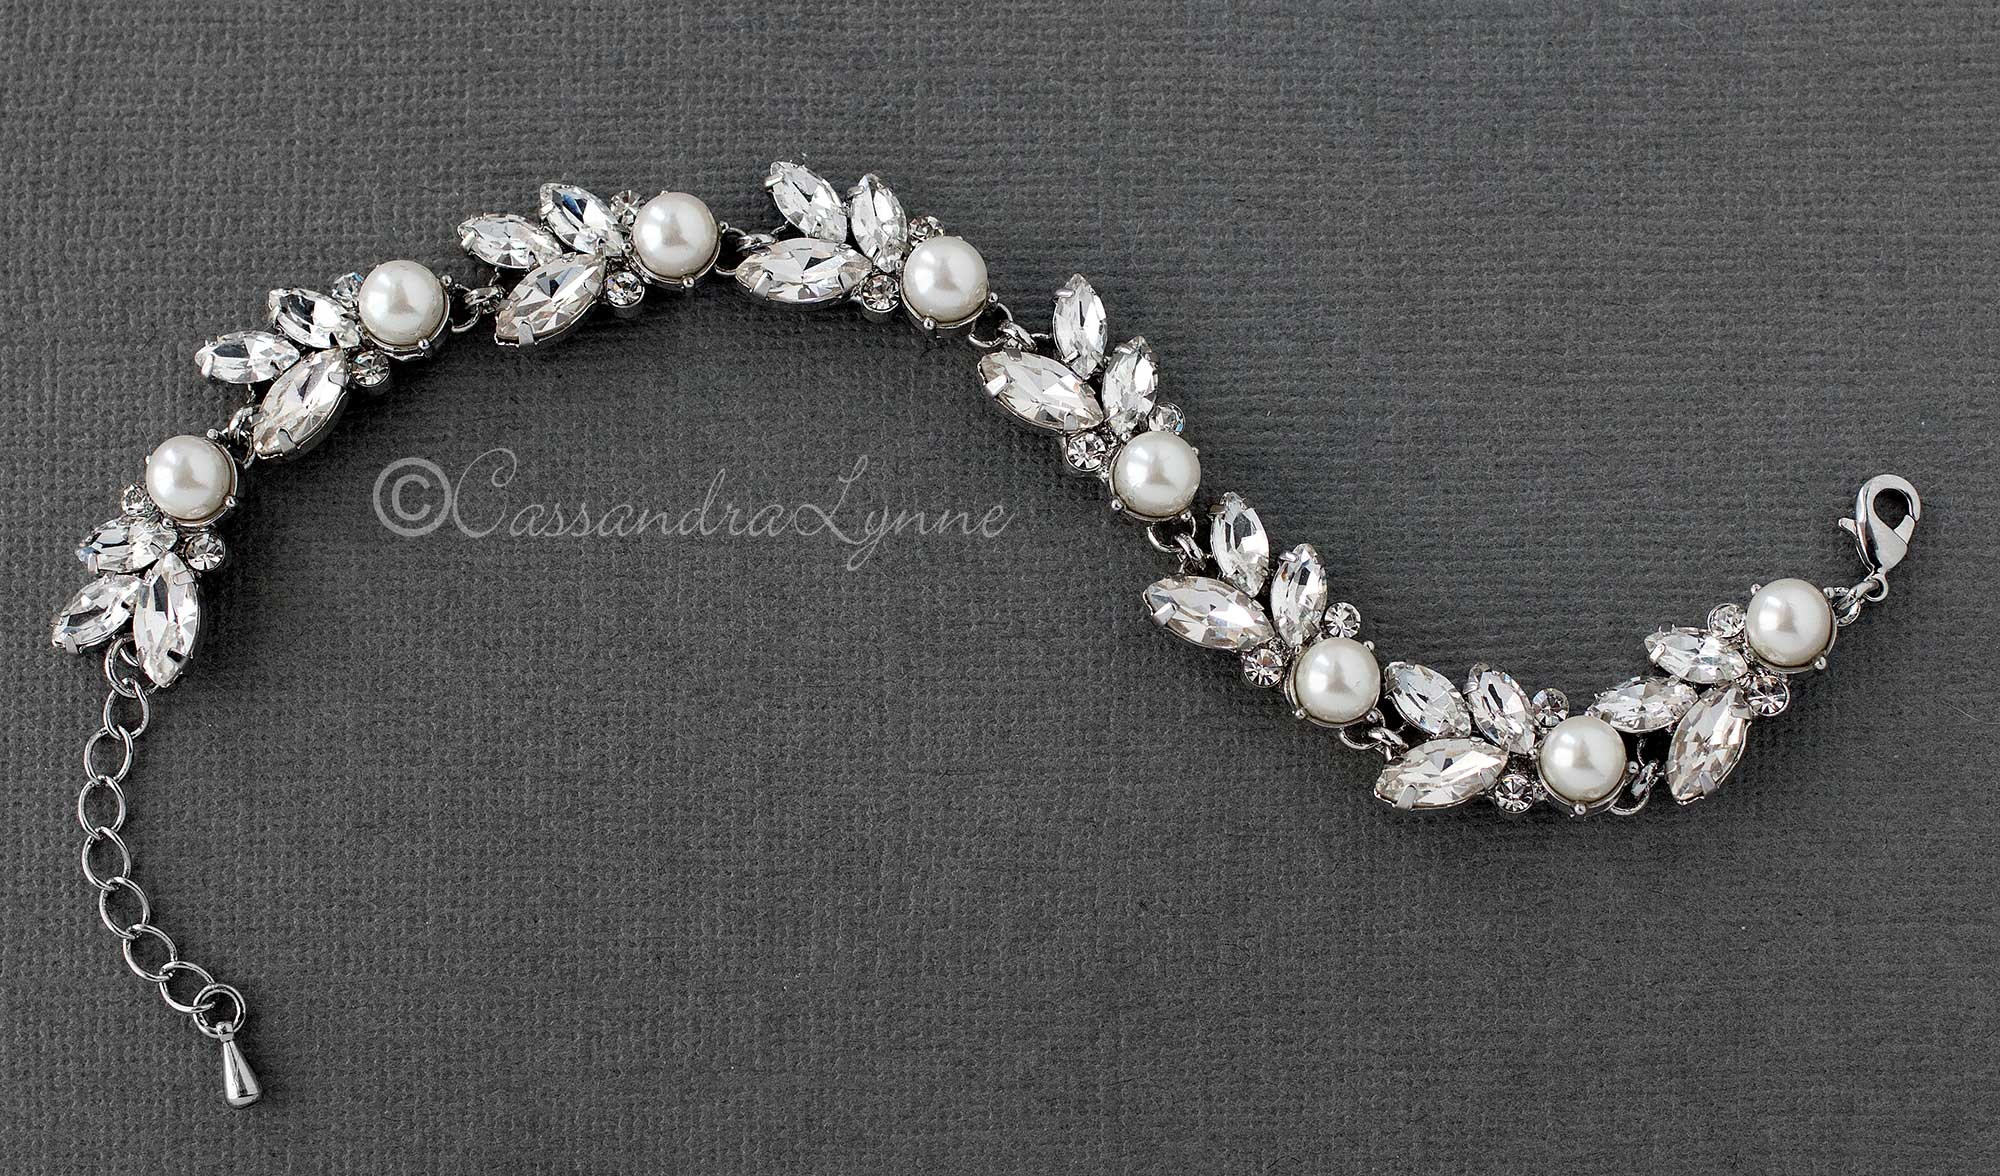 Bracelet of Pearl and Rhinestone Leaf